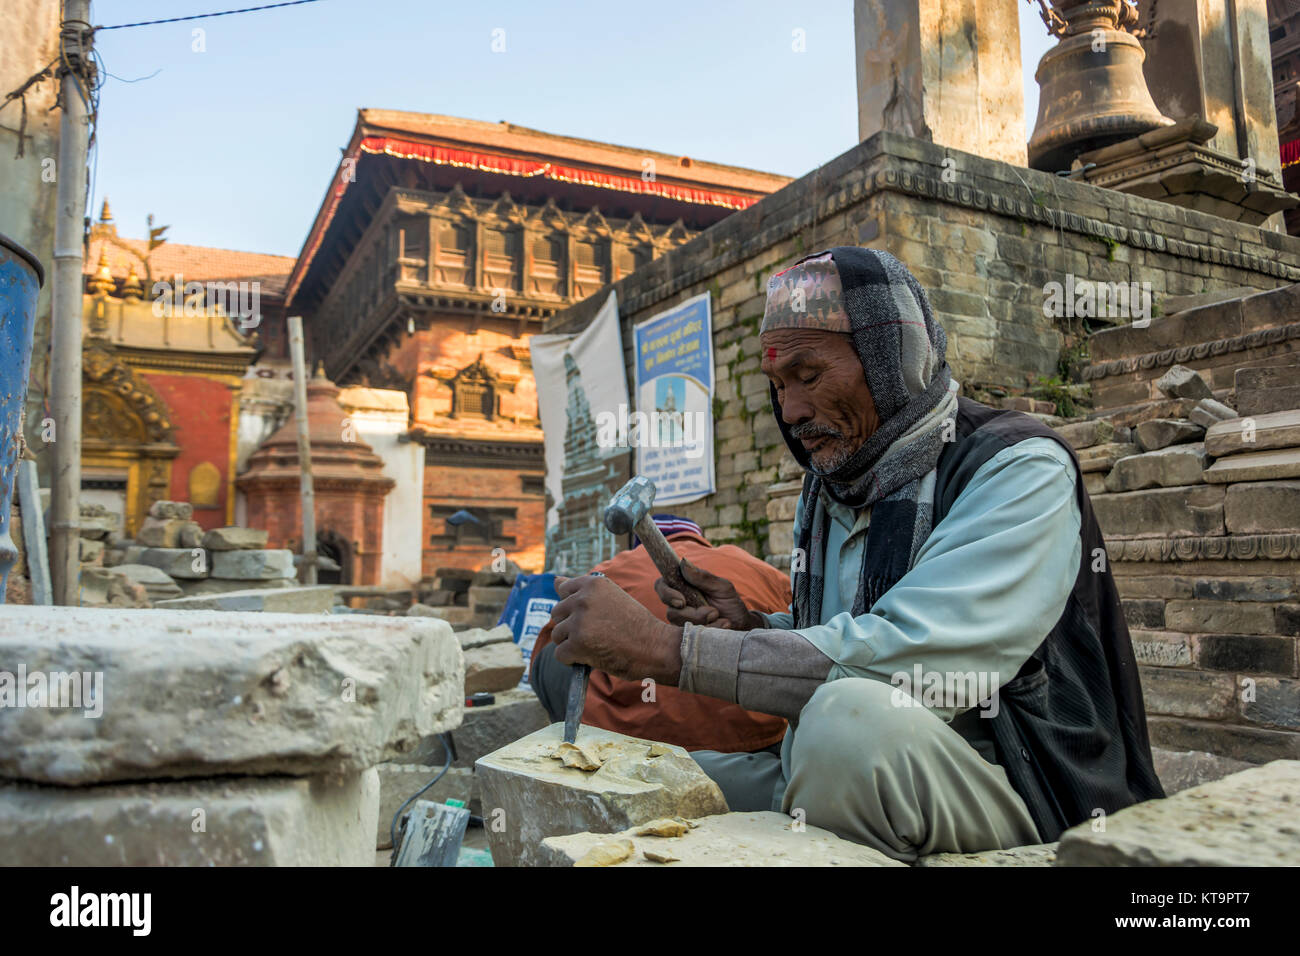 7 December 2017: Artist crafting stones at Bhaktapur Durbar Square renovate the temples damaged after the massive - Stock Image